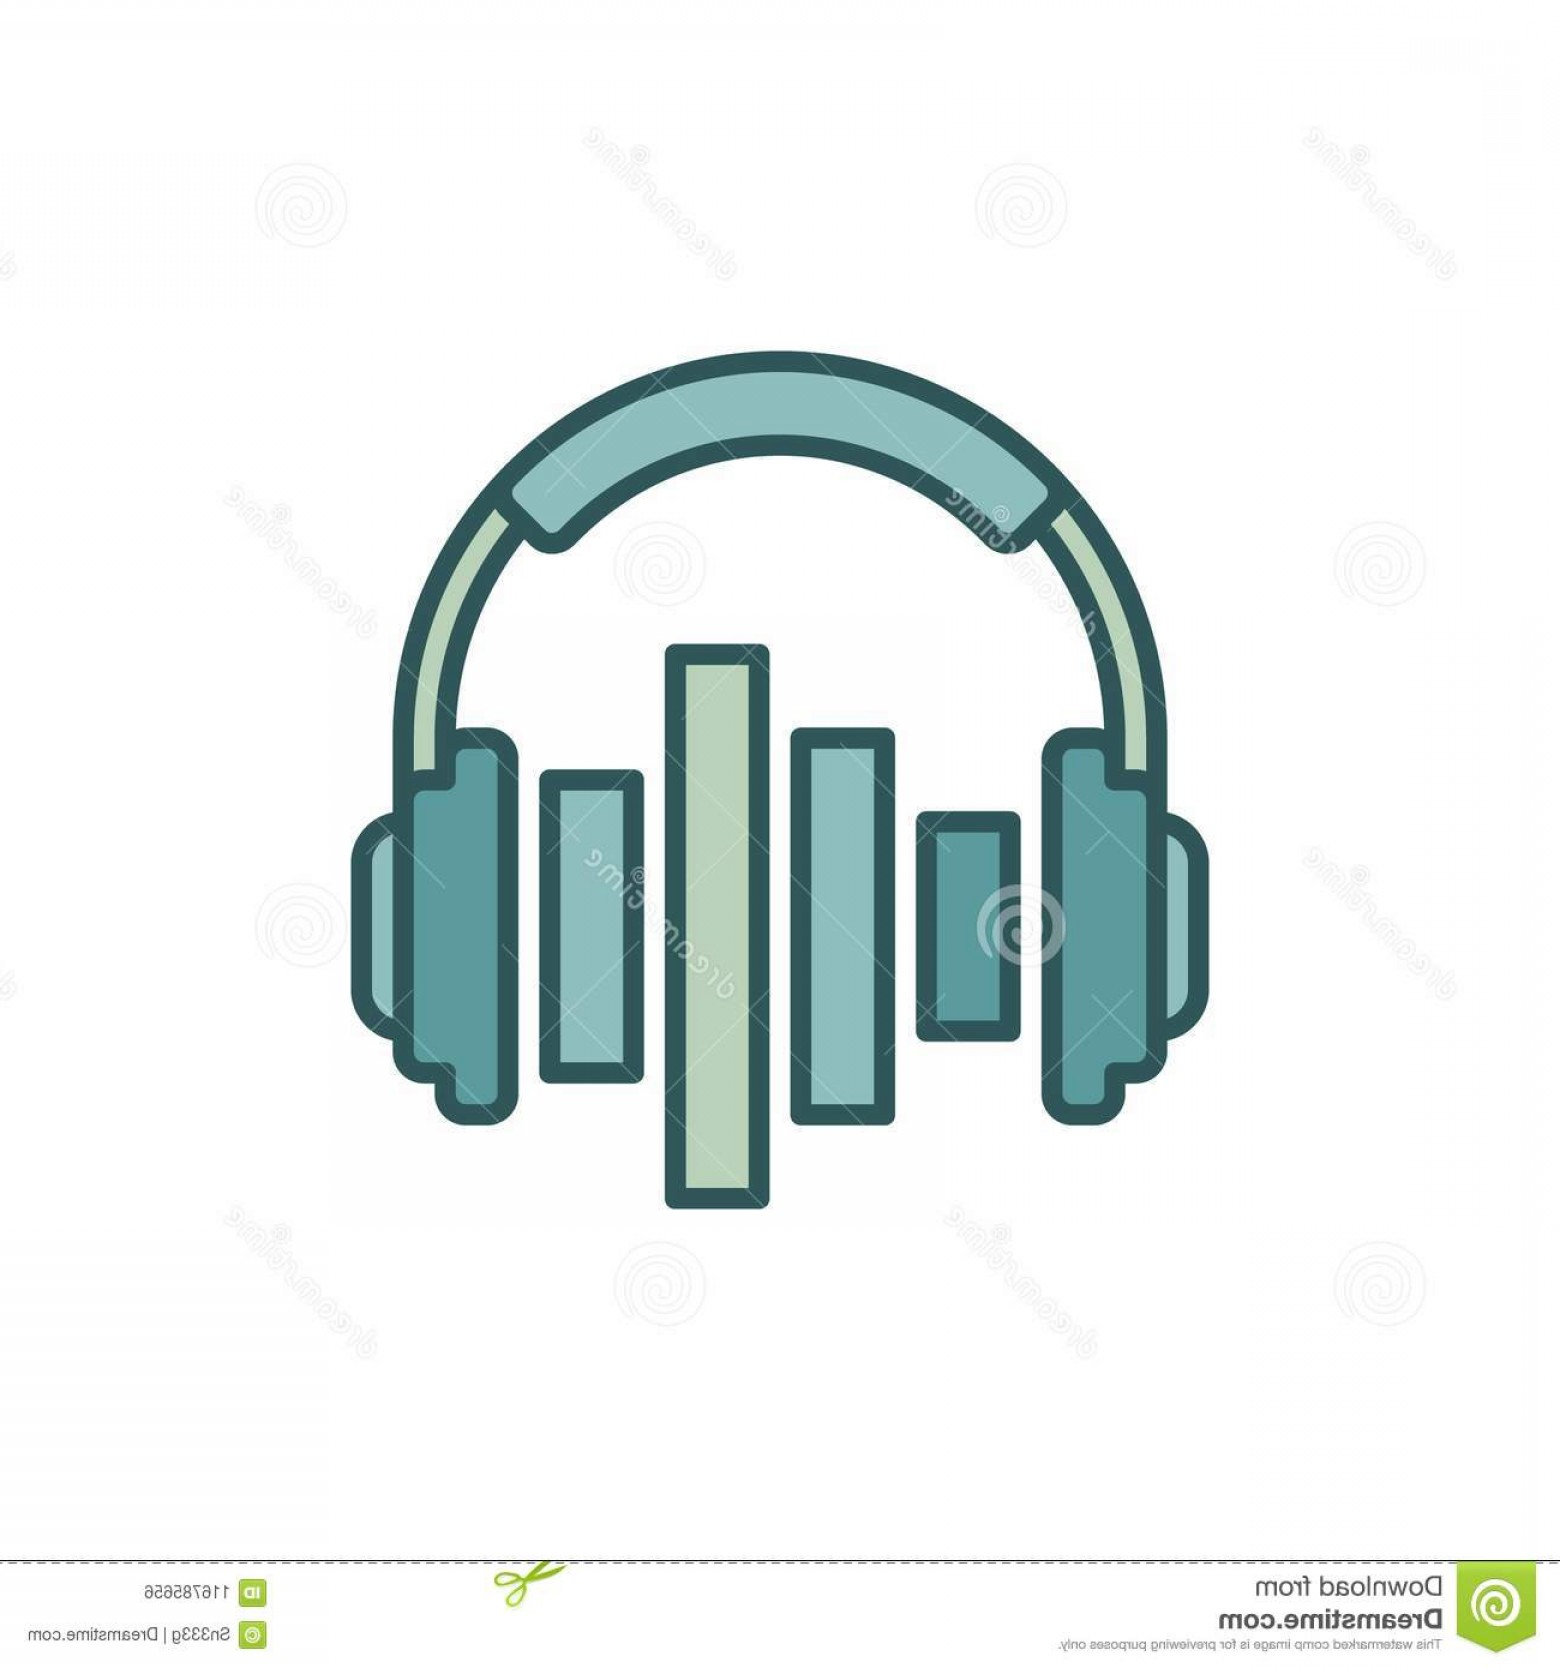 Equalizer Vector Icons: Music Headphones Equalizer Vector Icon Design Element Music Headphones Equalizer Vector Concept Icon Design Image